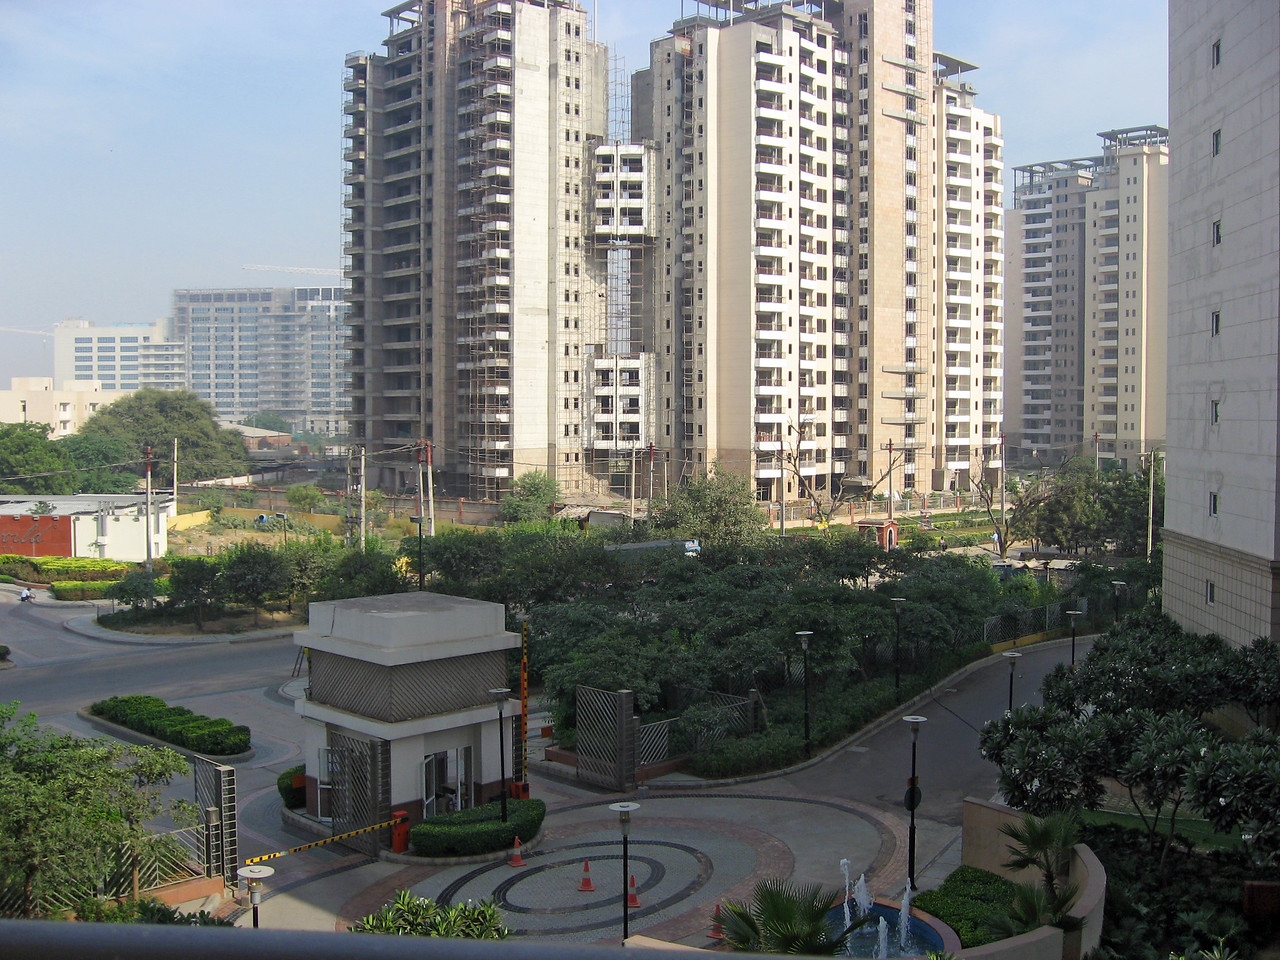 UHG company guest house, view from my room (Building E, 3rd floor)